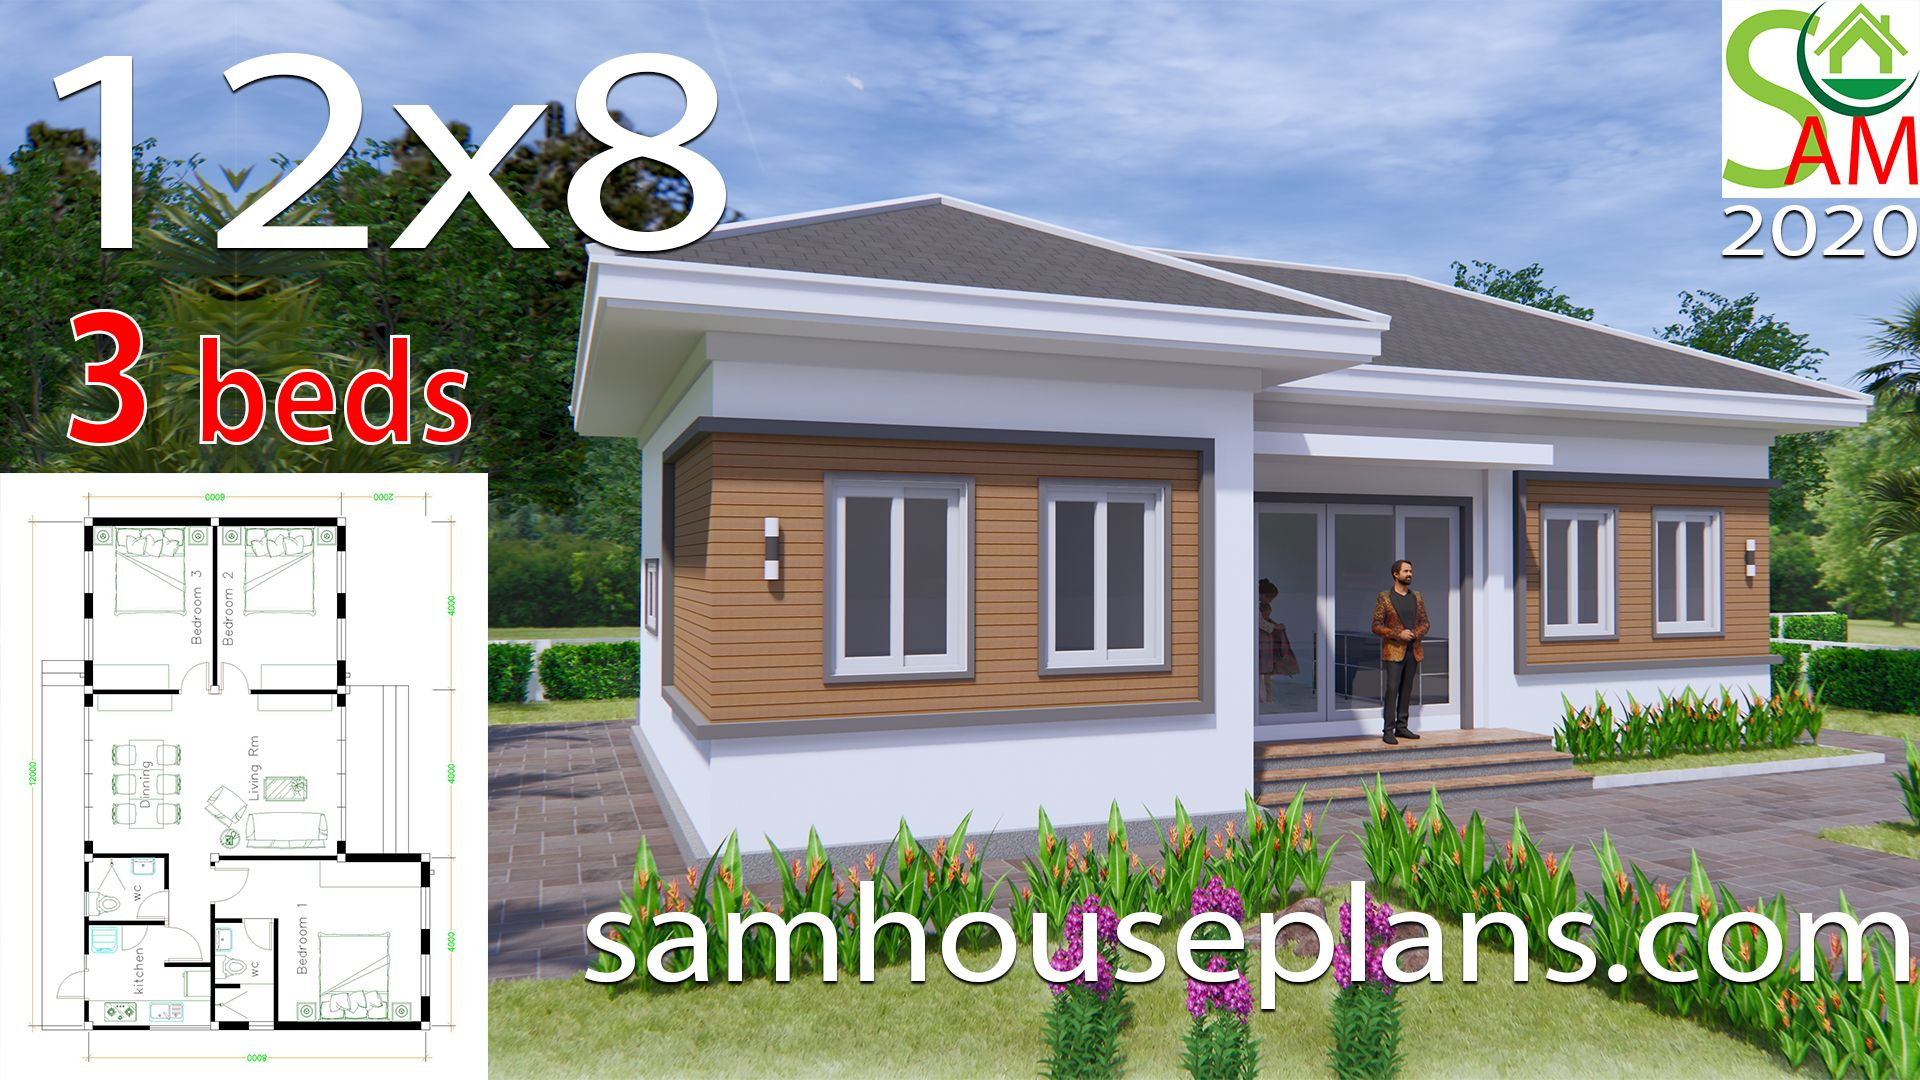 House Plans 12x8 With 3 Bedrooms Hip Roof Sam House Plans House Construction Plan Architectural House Plans Beautiful House Plans